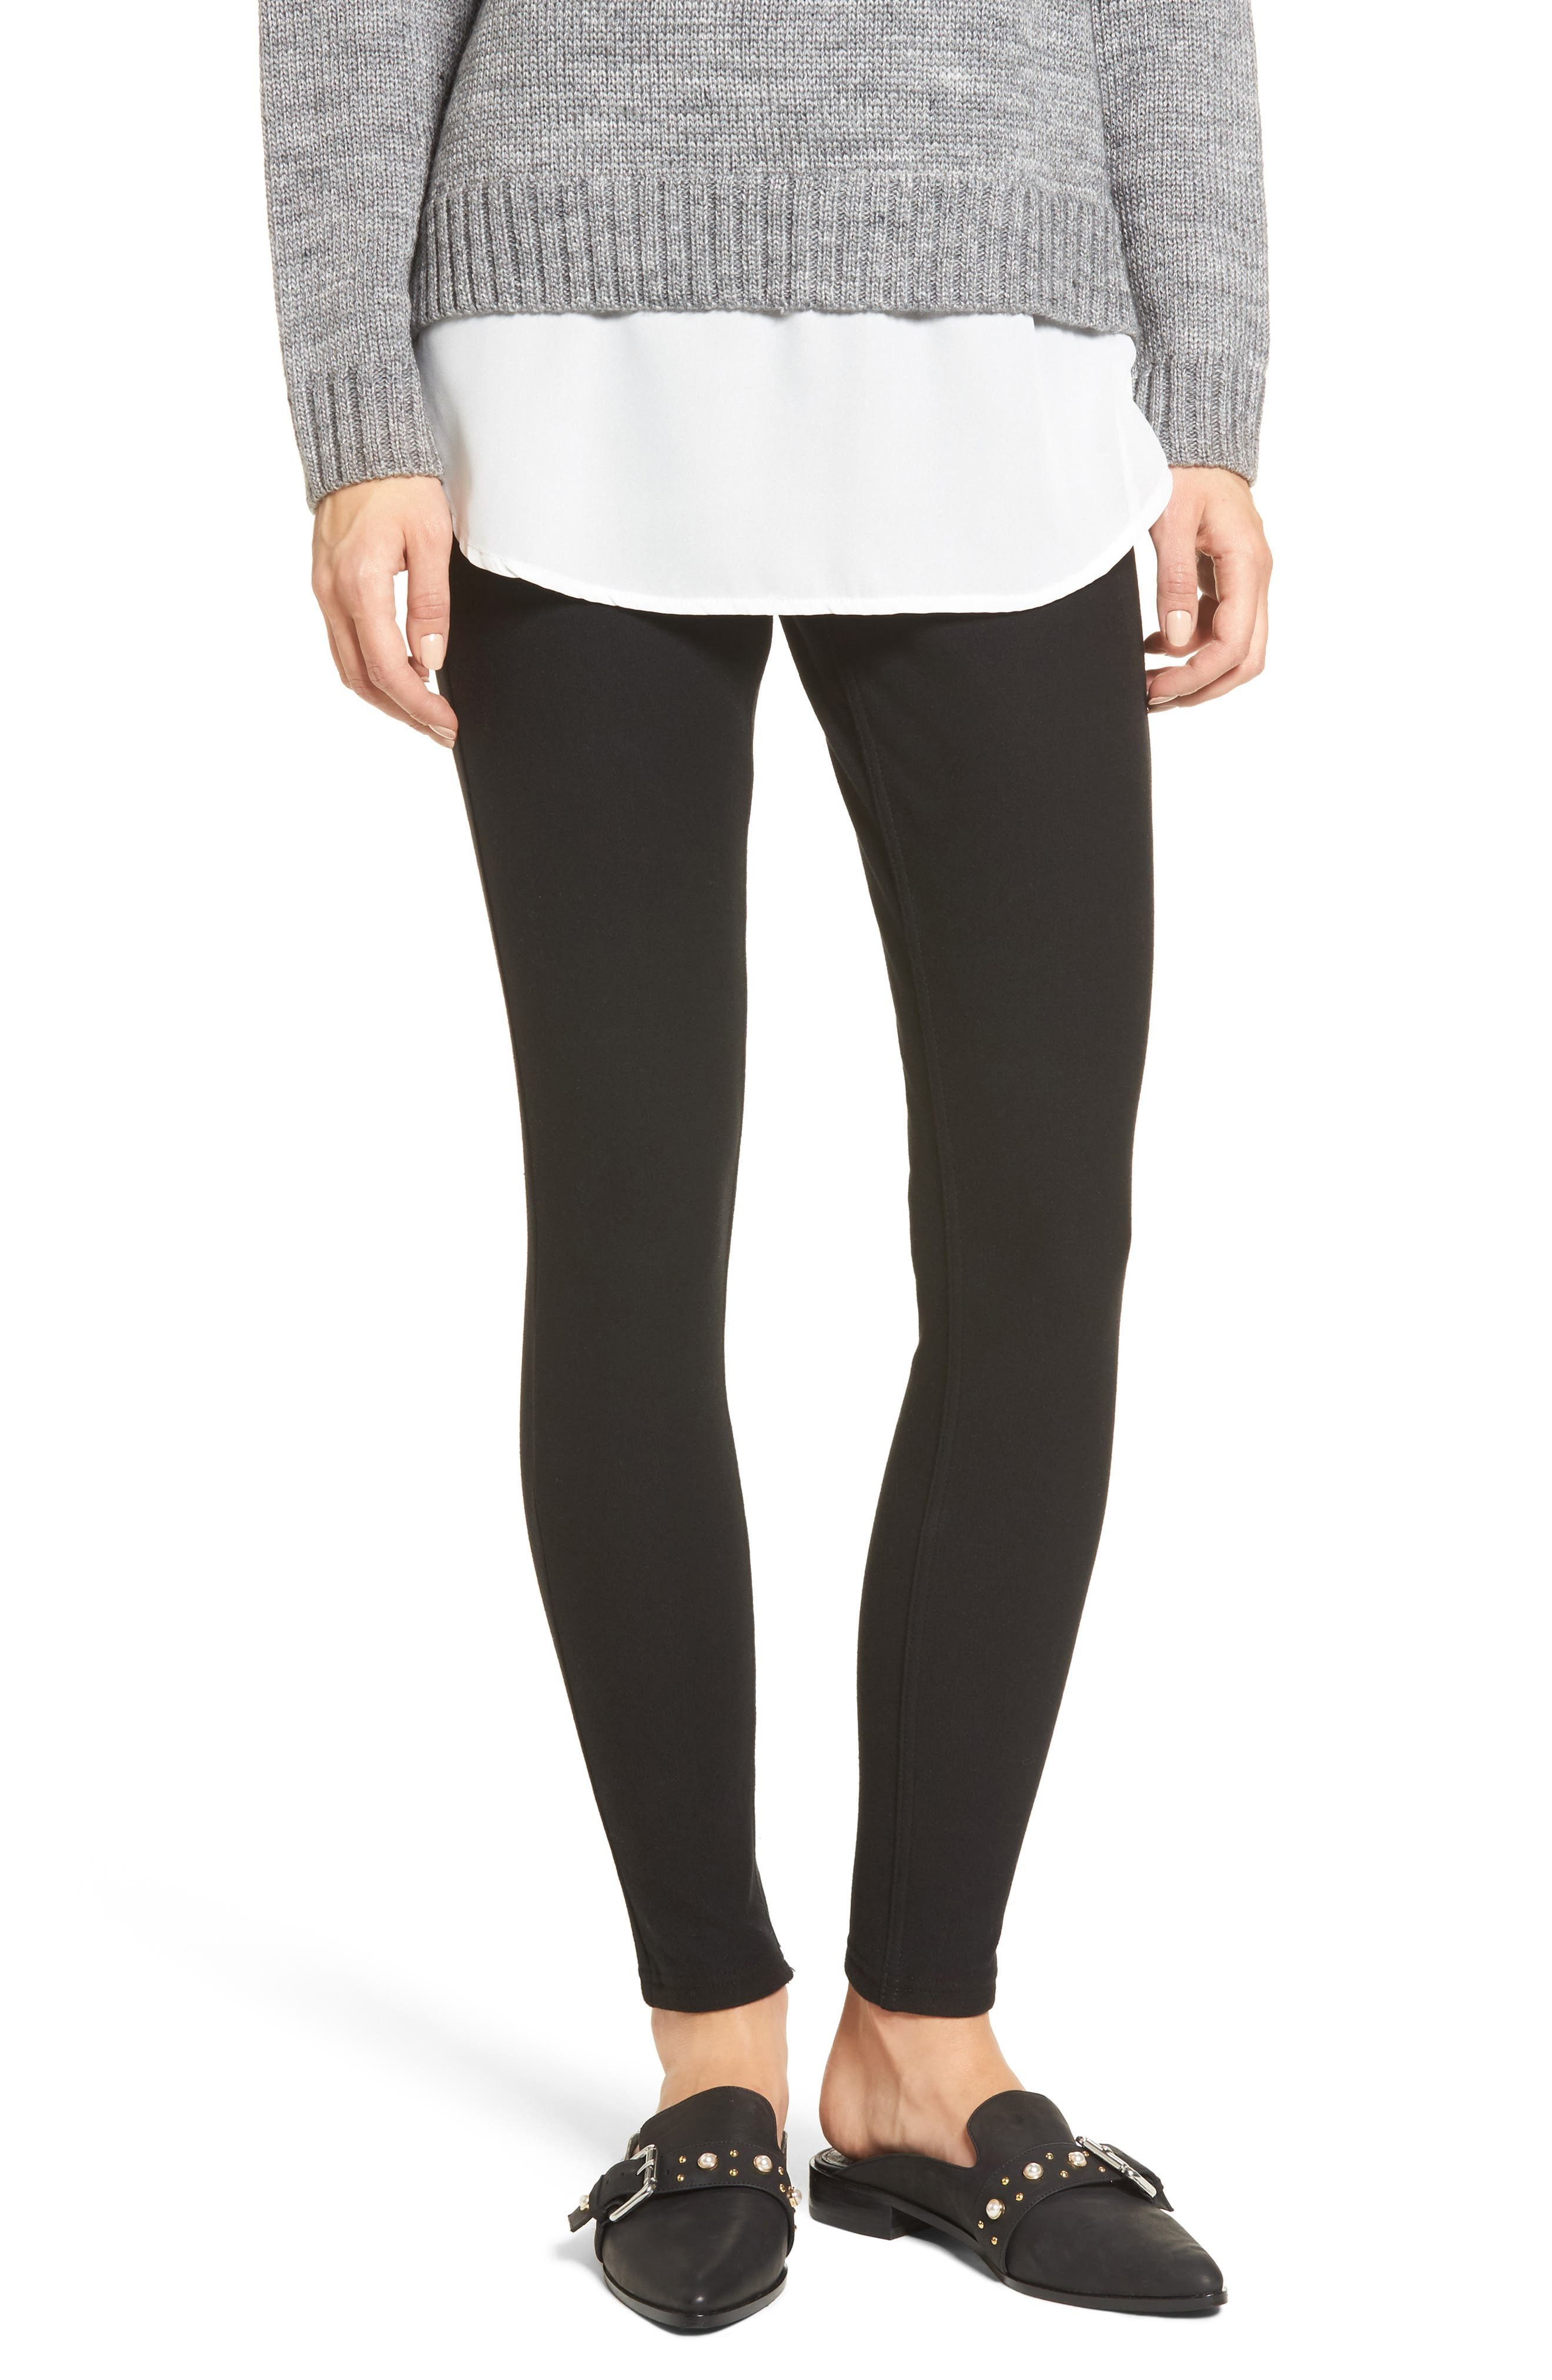 Main Image - Hue Fleece Lined Leggings